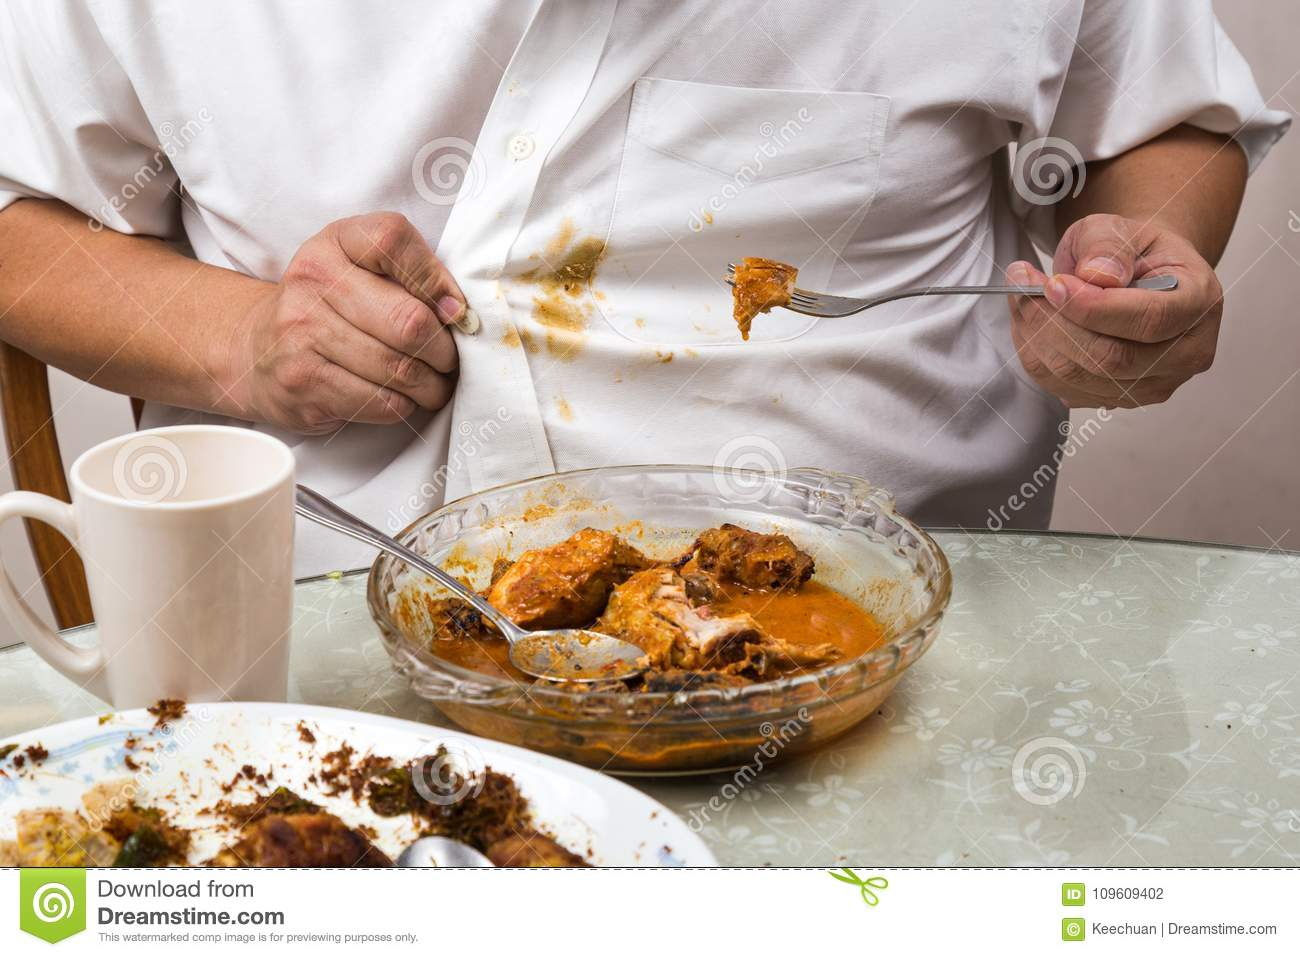 Person Accidently Spilled Curry Stain Onto White Shirt Stock Photo